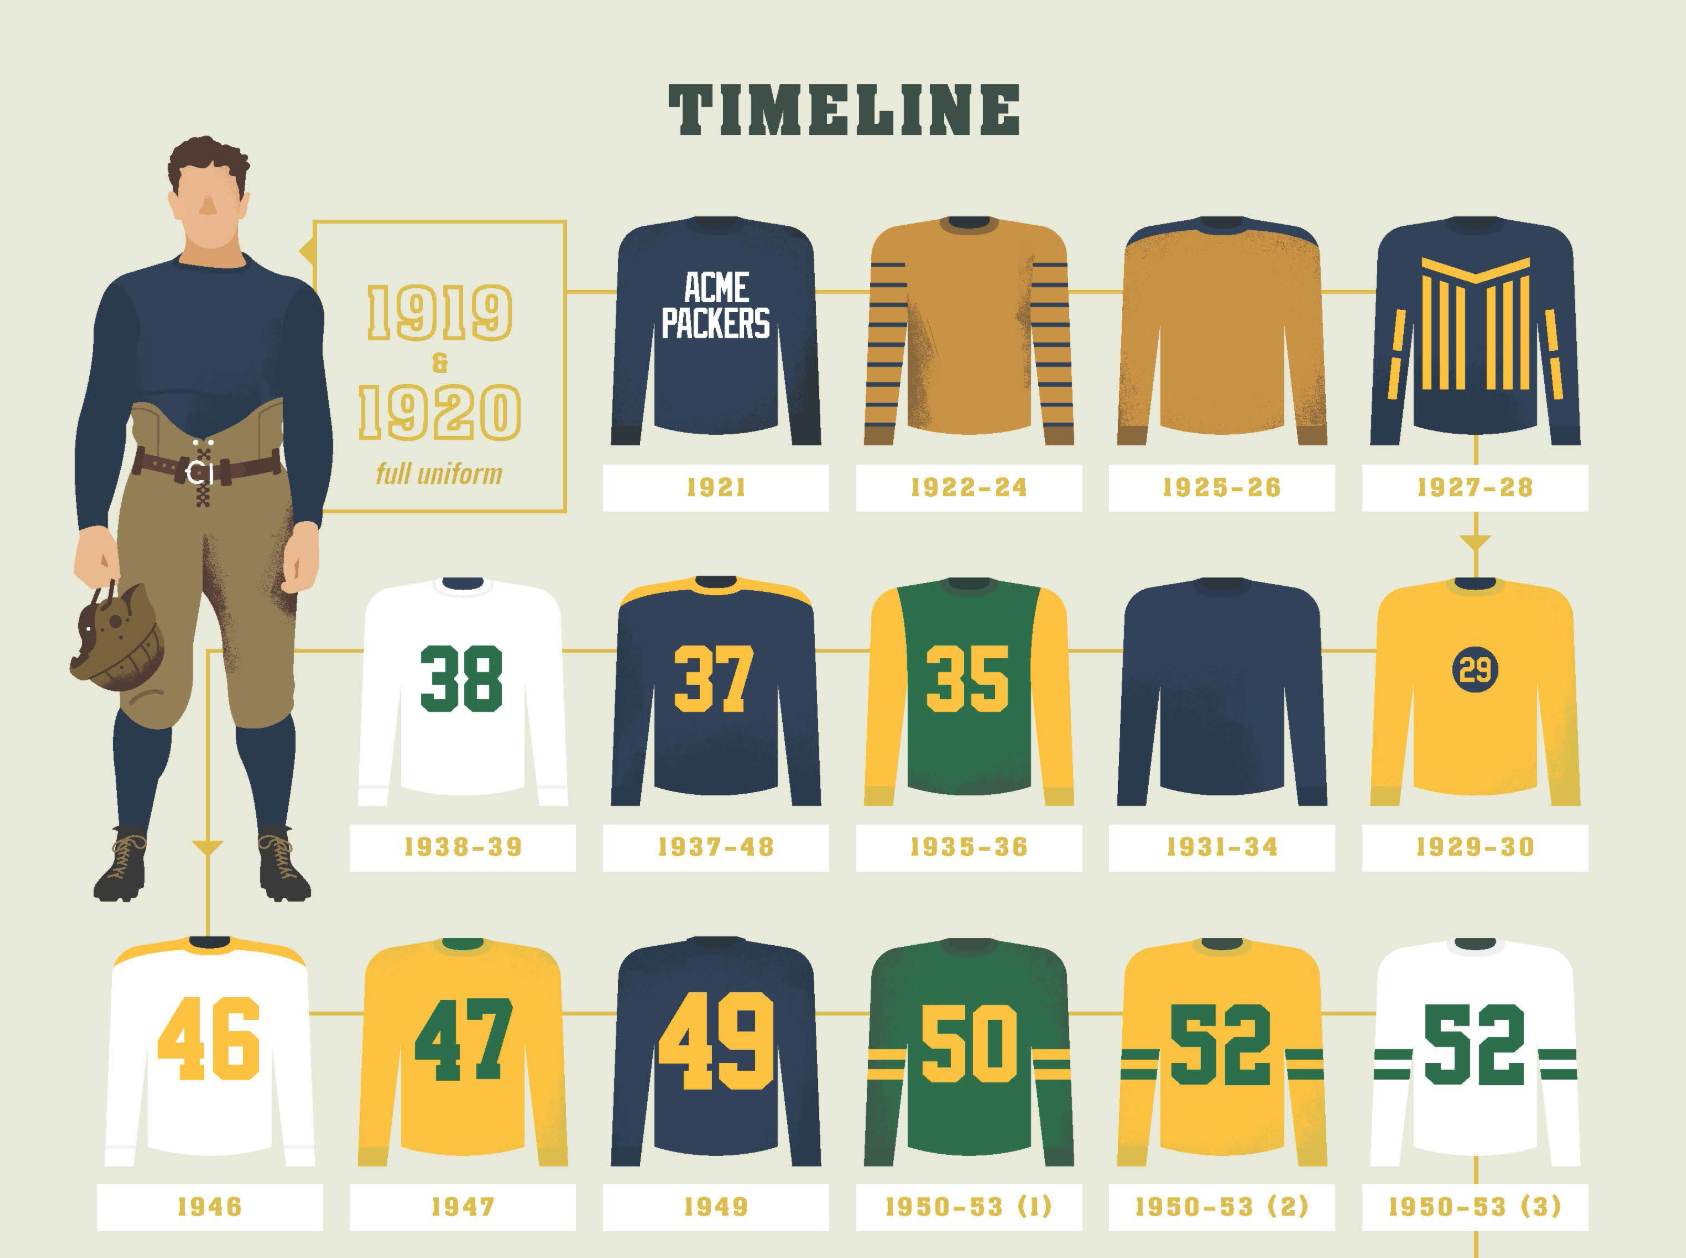 Part of Lemonly's infographic for the Green Bay Packers. (Credit: Lemonly)